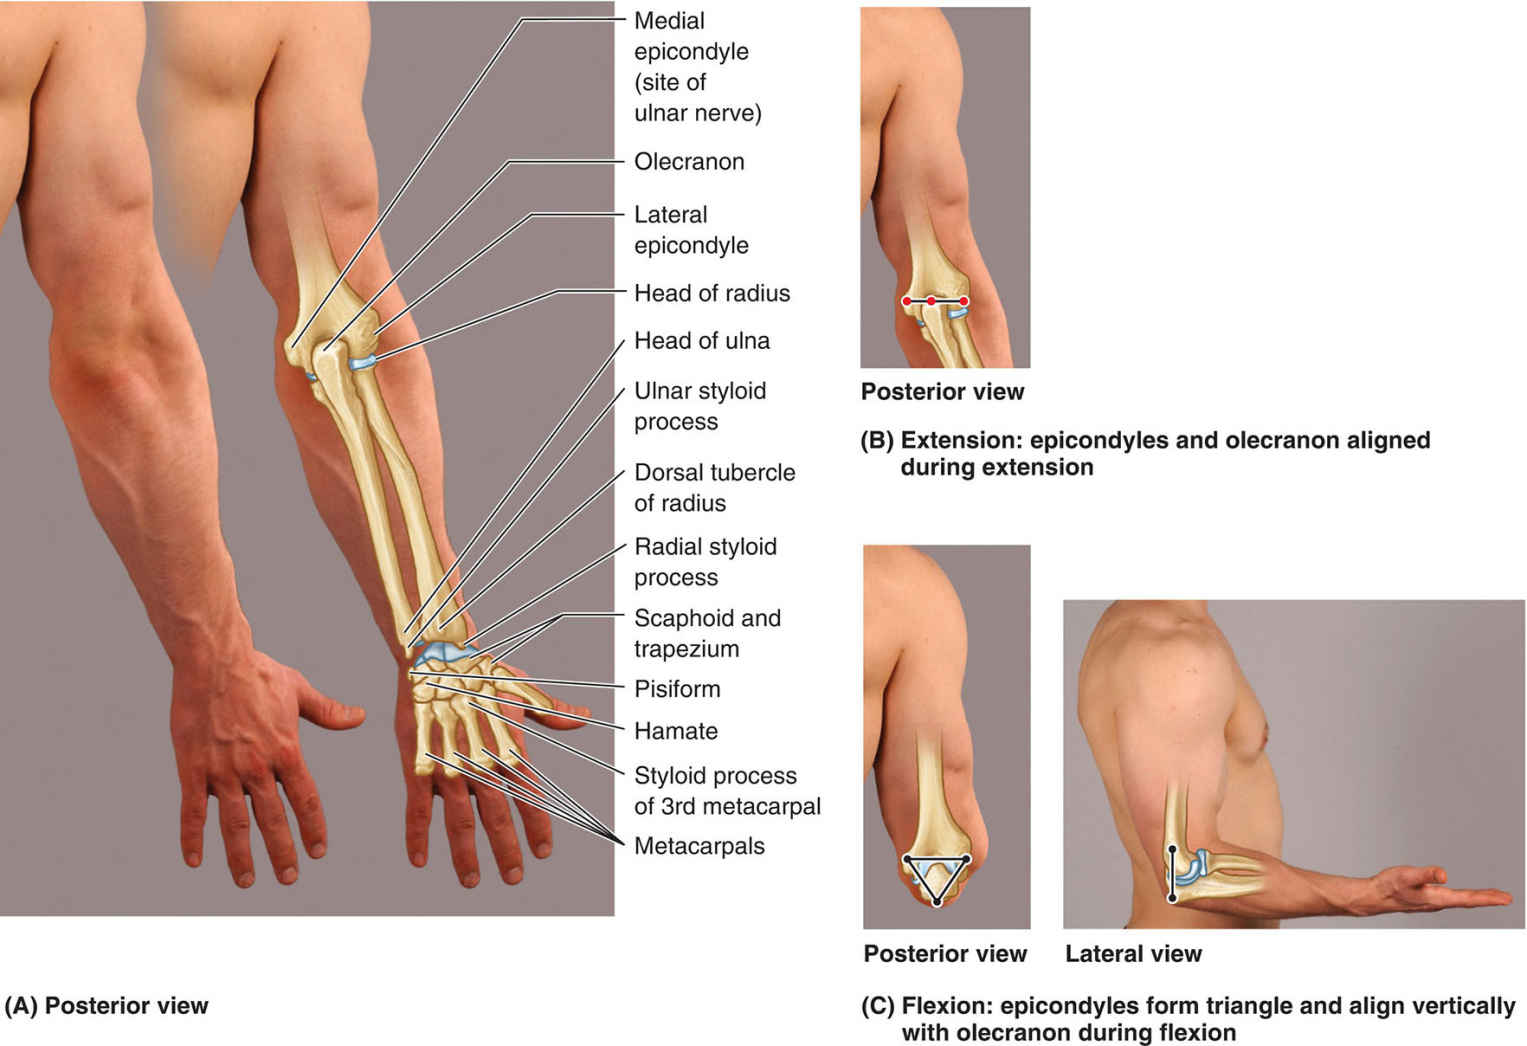 Surface Anatomy Of Bones And Bony Formations Of Elbow Region